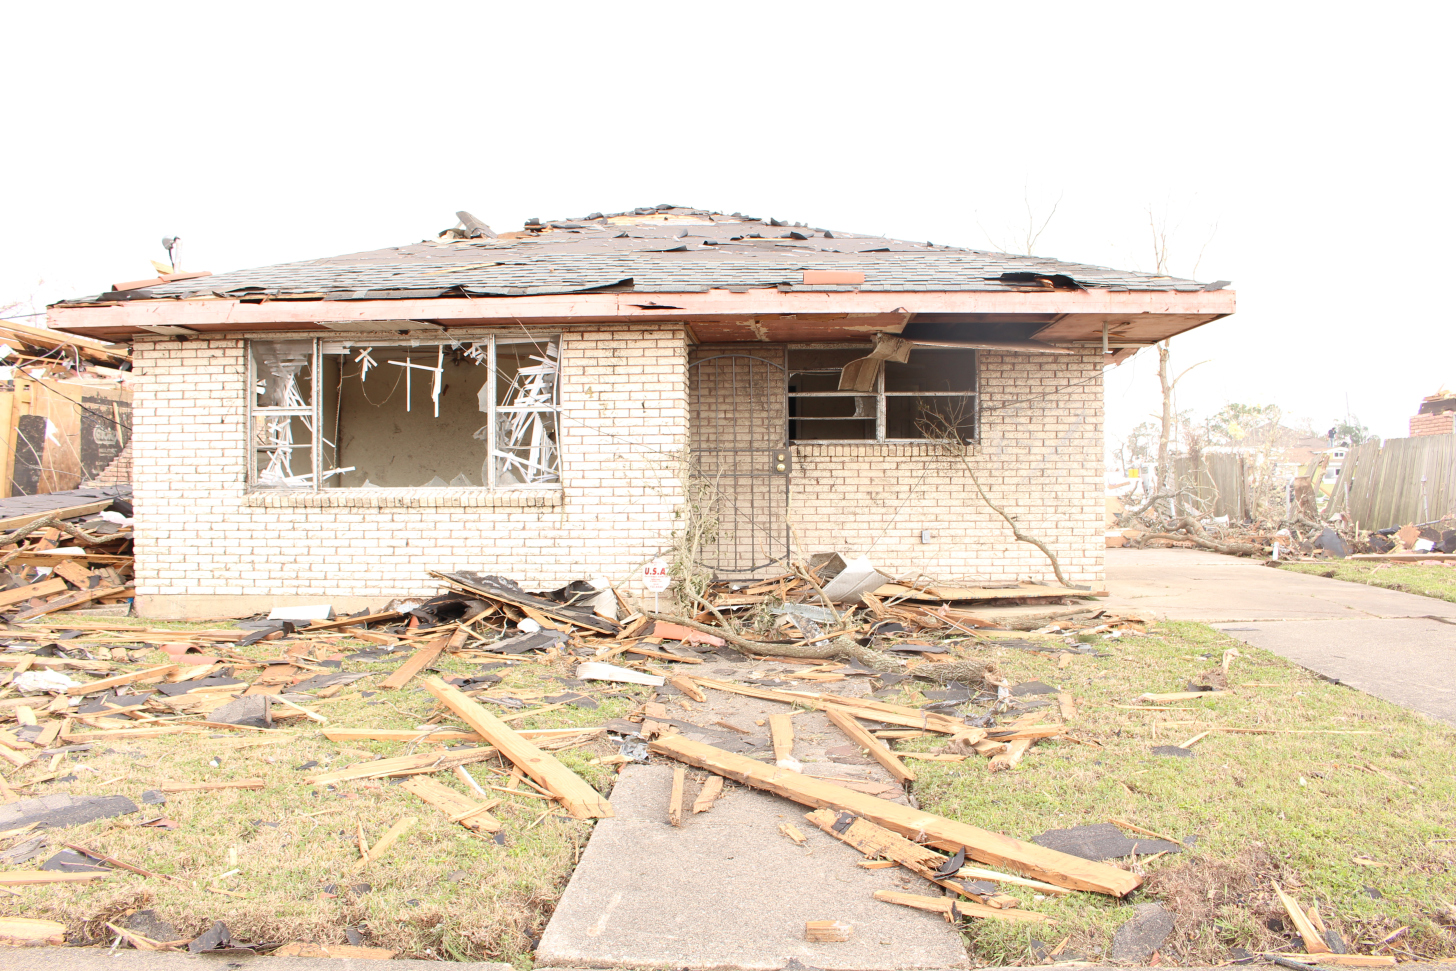 New Orleans East residents turn to each other to pick up the pieces, in wake of EF3 tornado